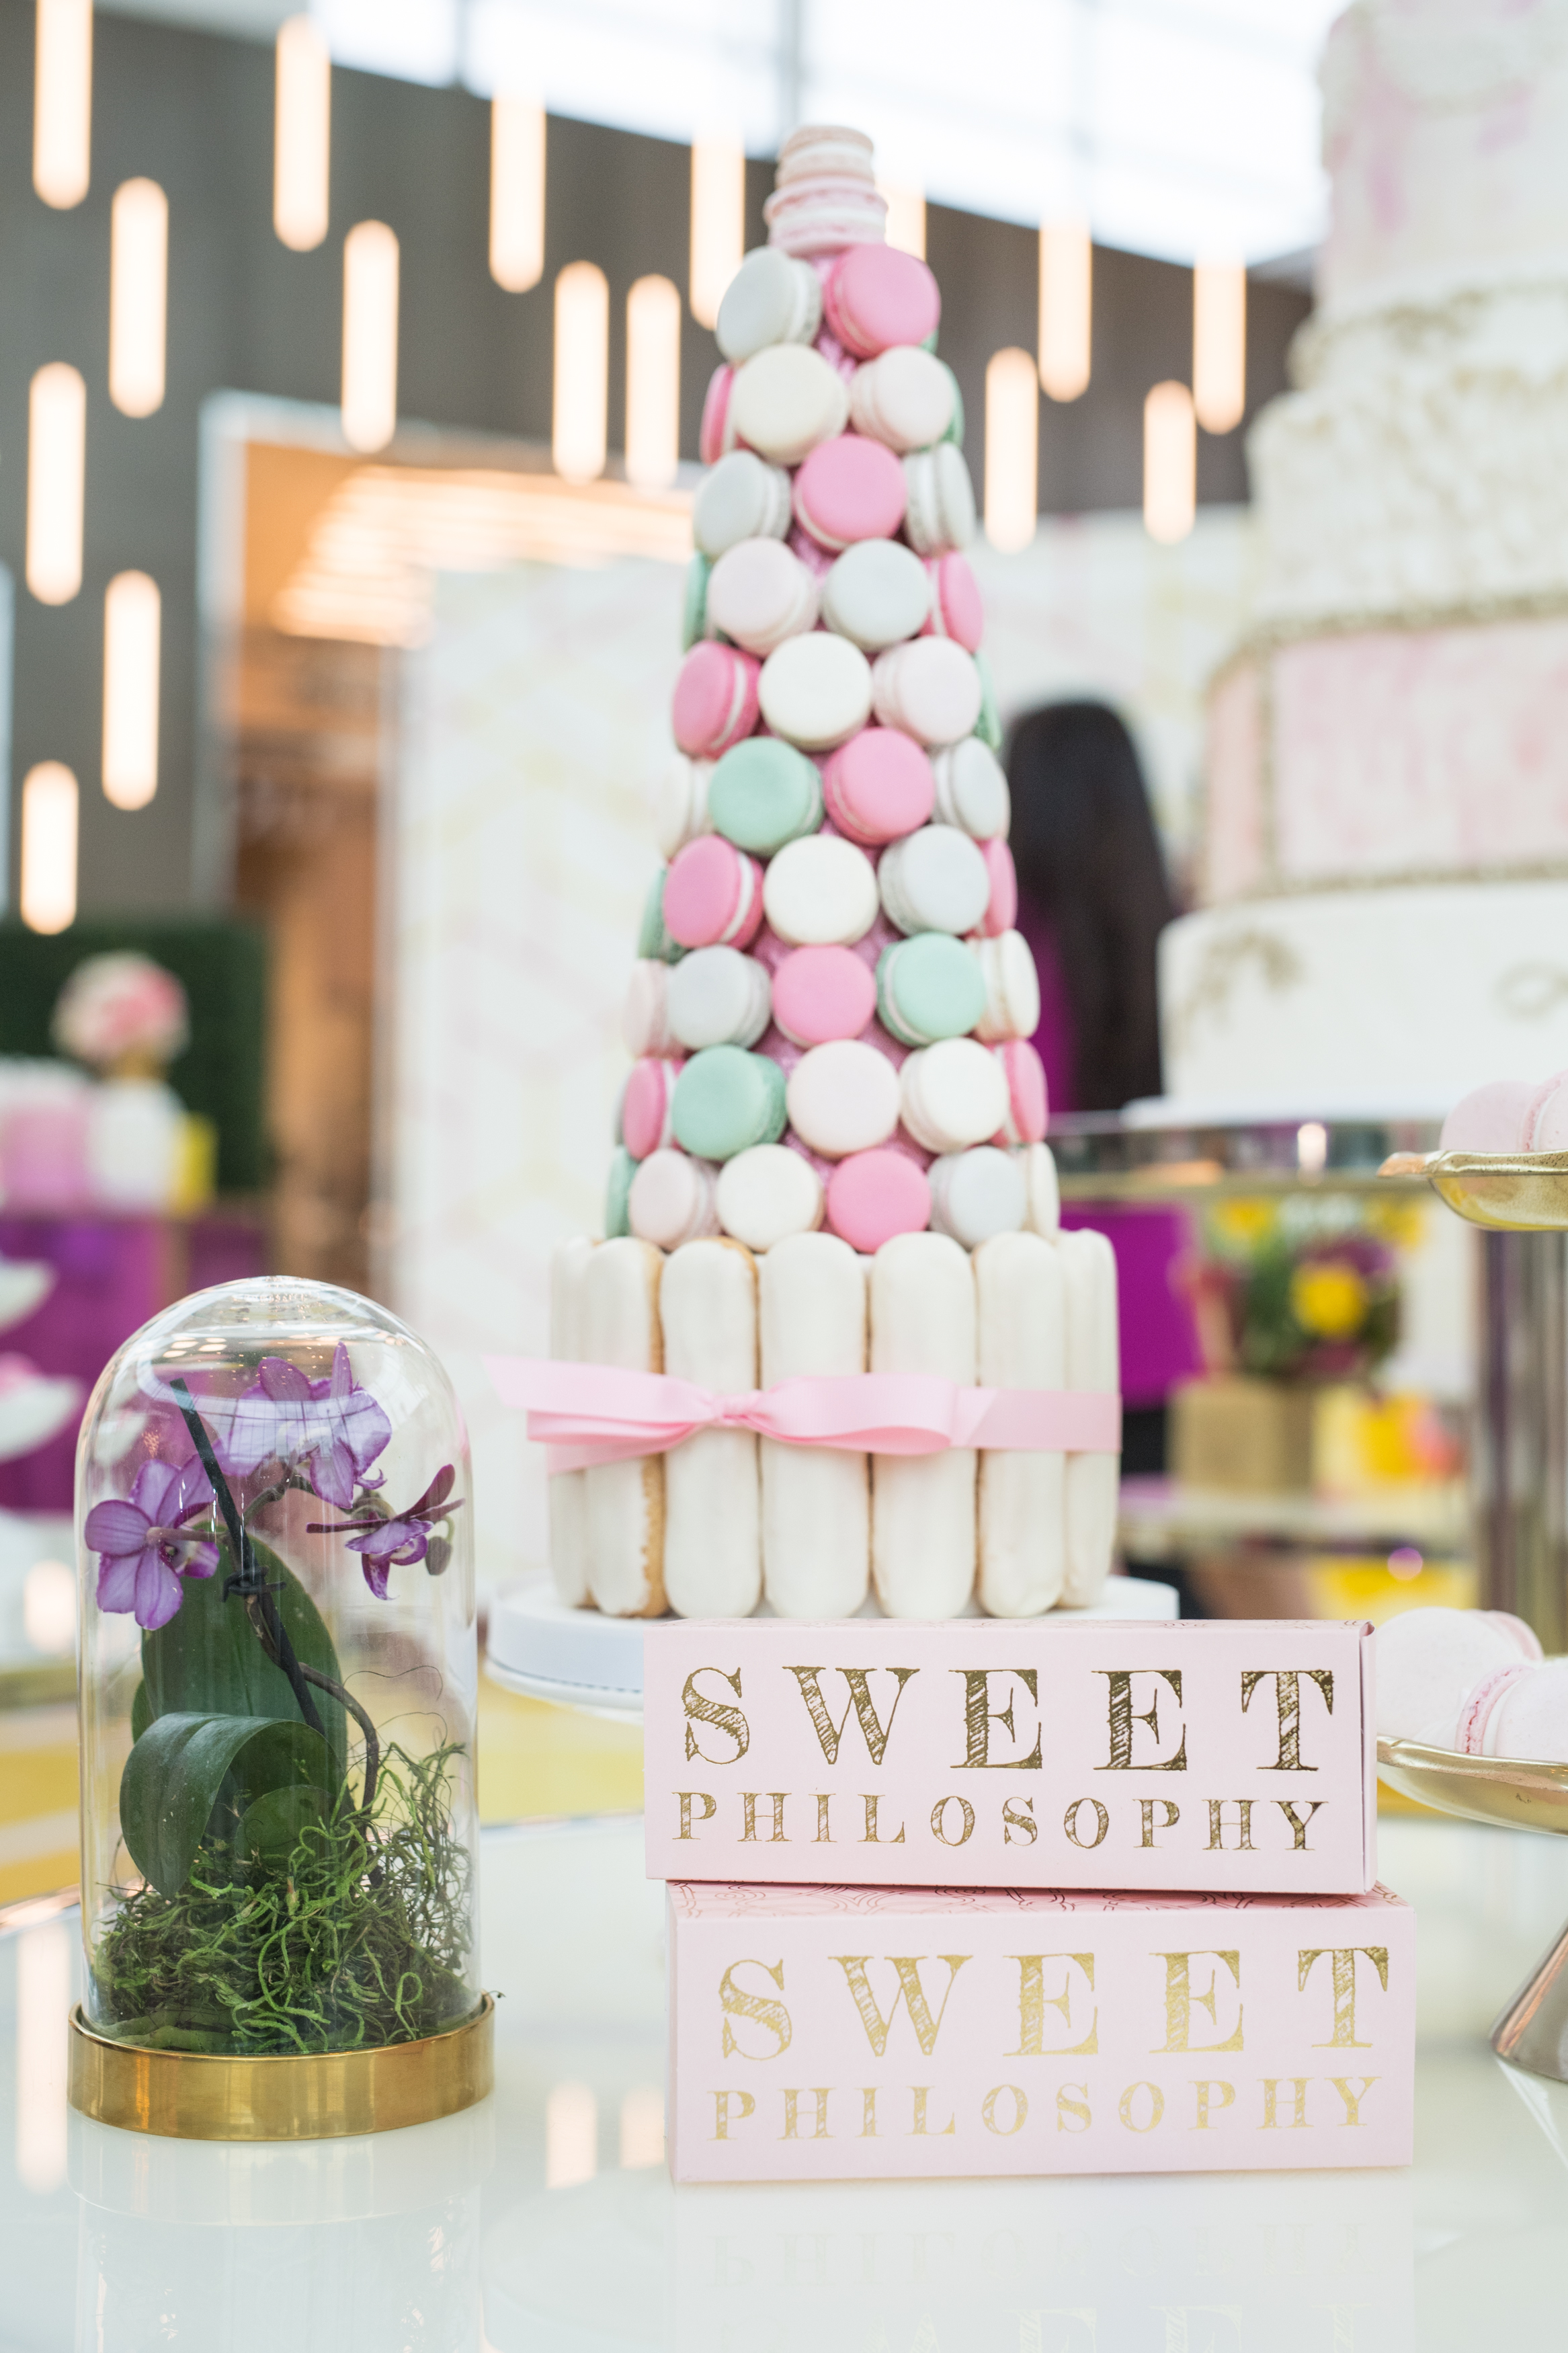 August In Bloom - Macaron tower - #SQ1Bridal (Square One Shopping Centre)